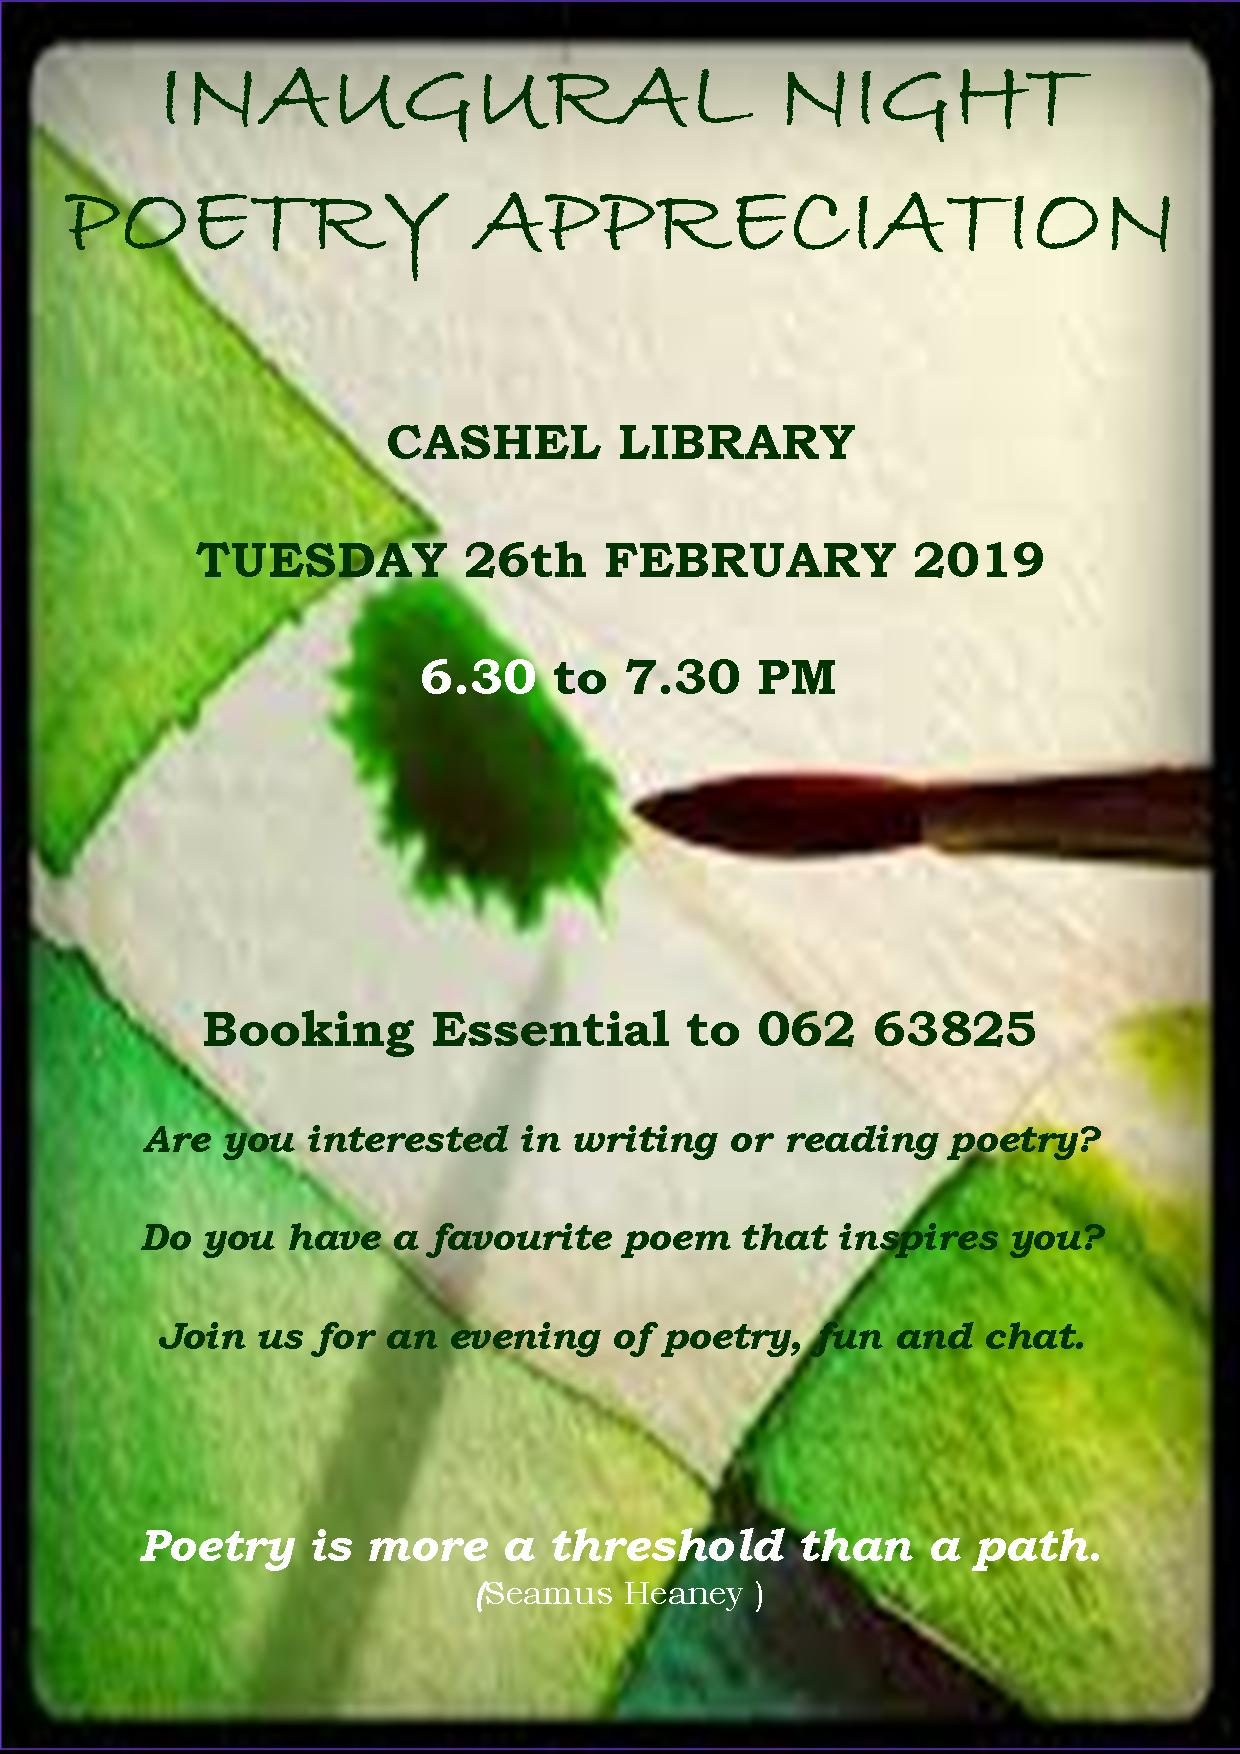 Poetry Appreciation Night in Cashel Library